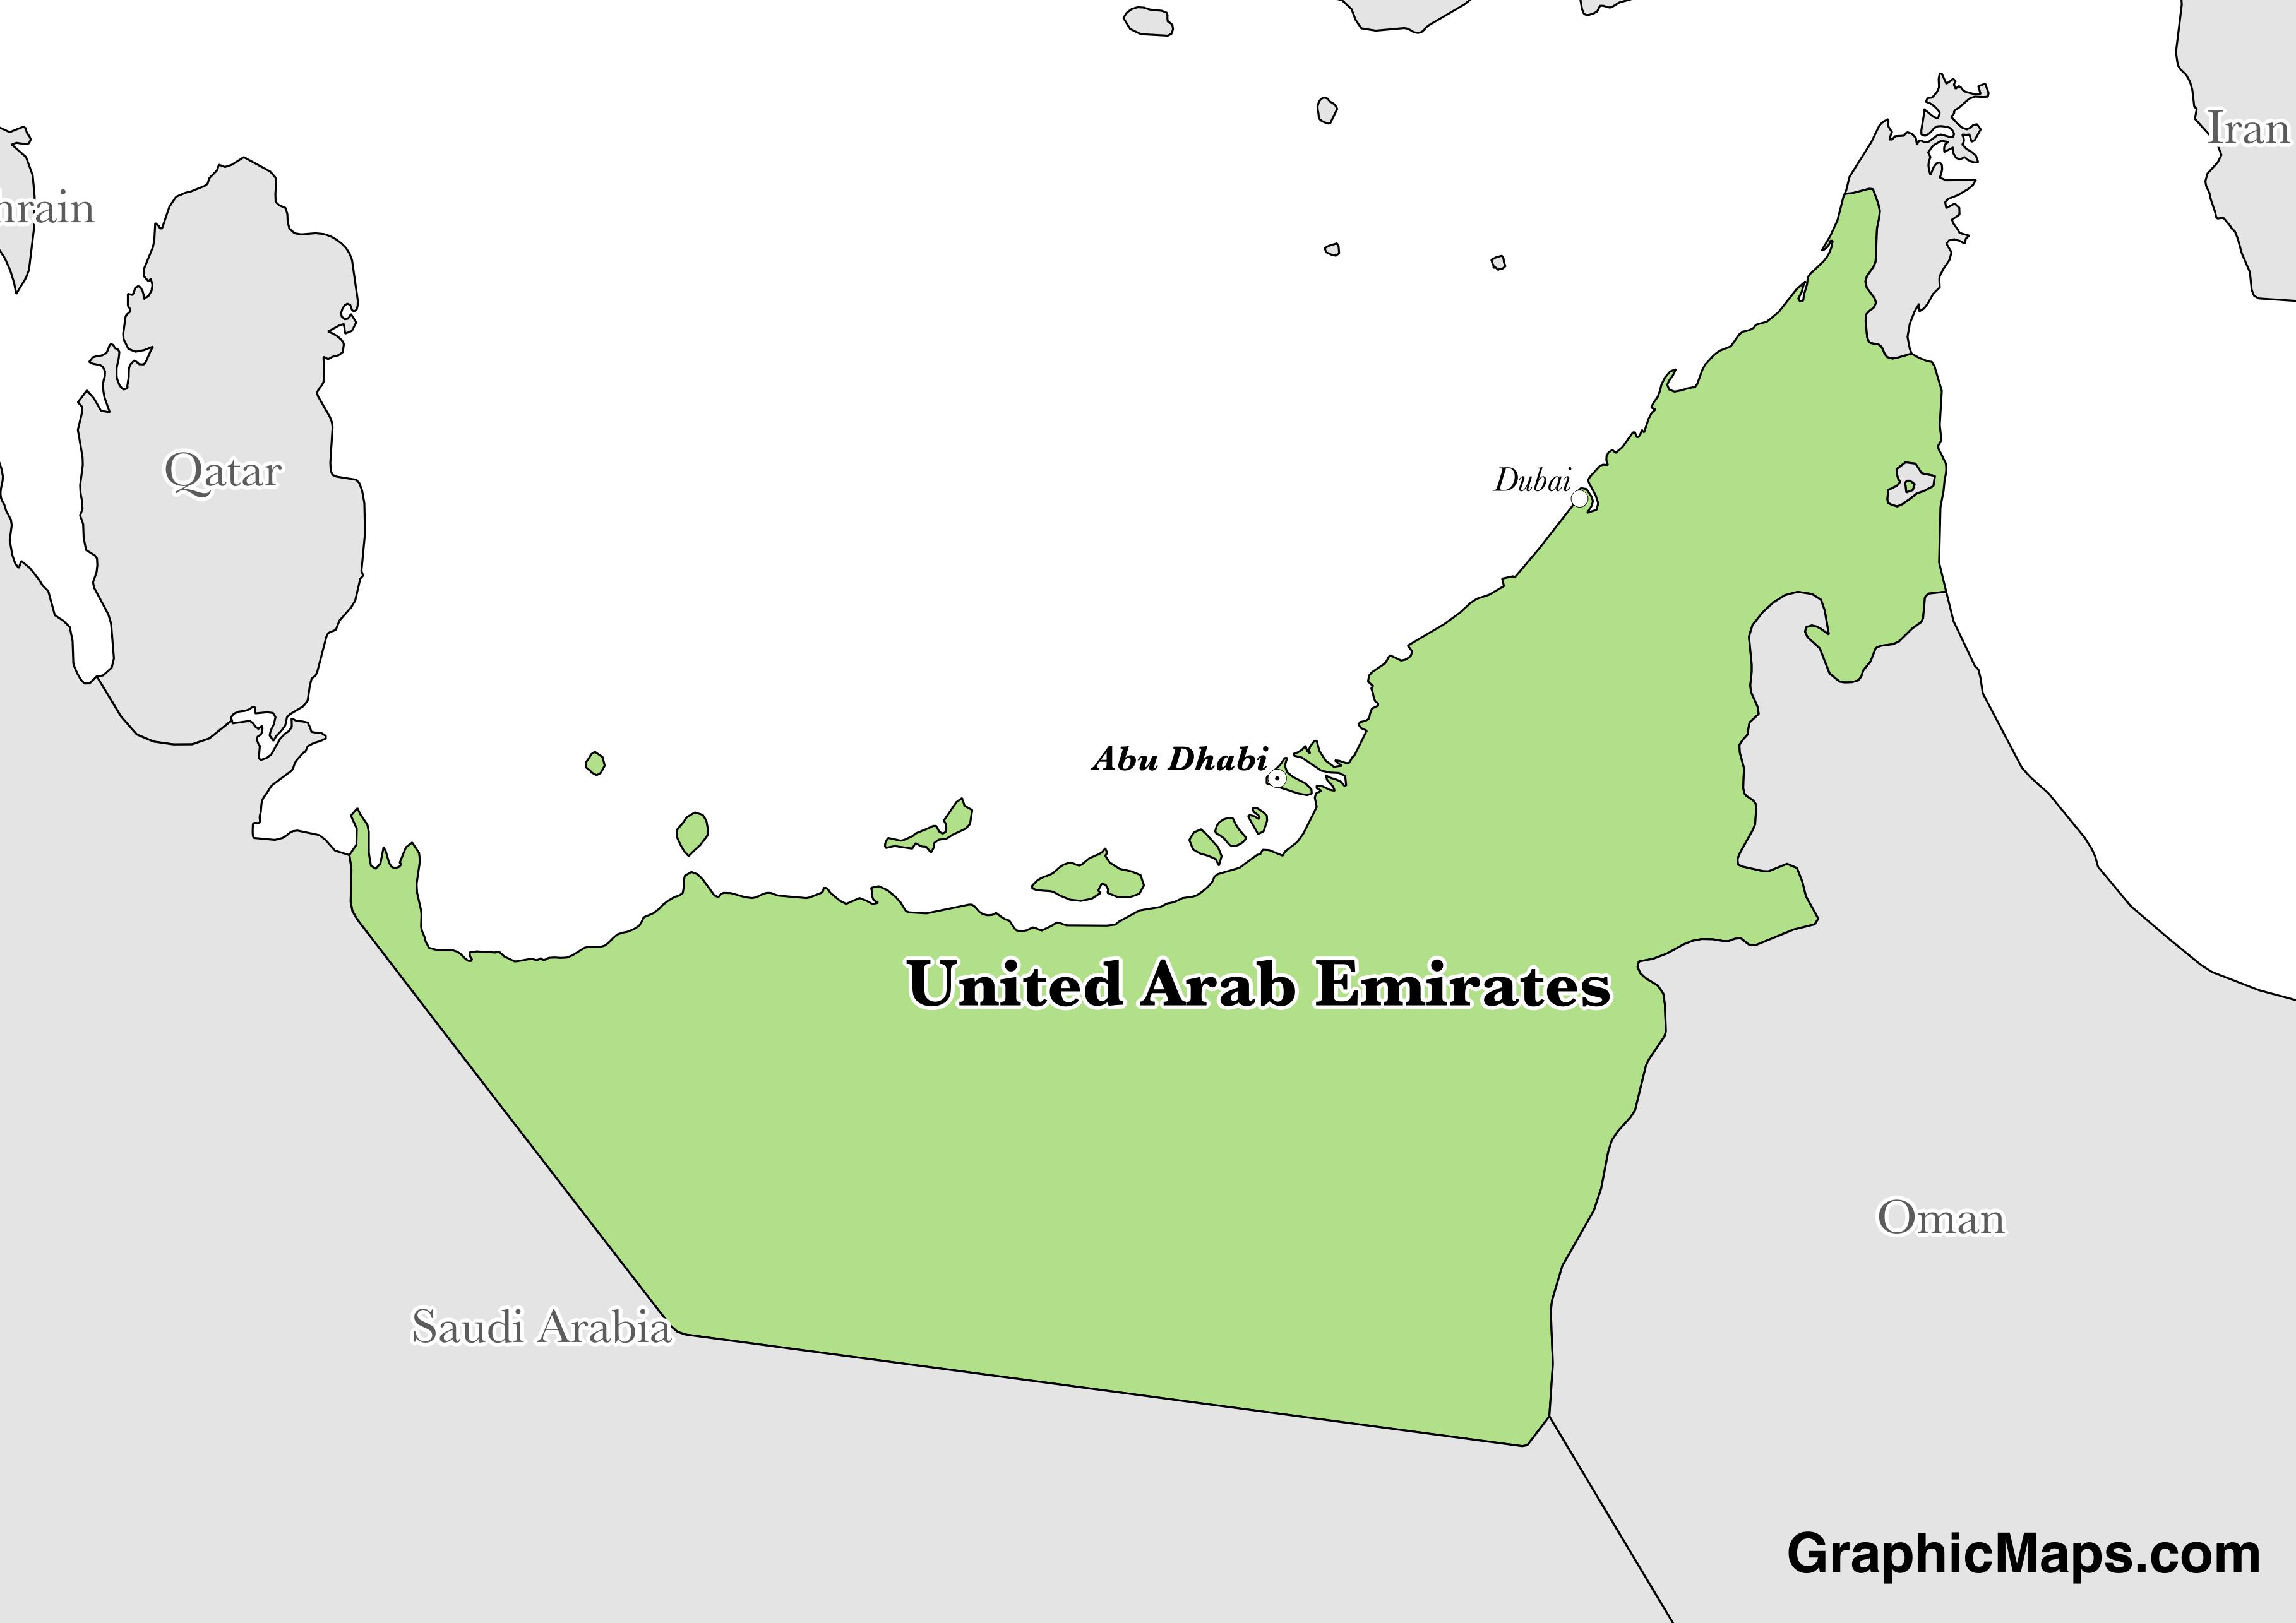 Map showing the location of United Arab Emirates